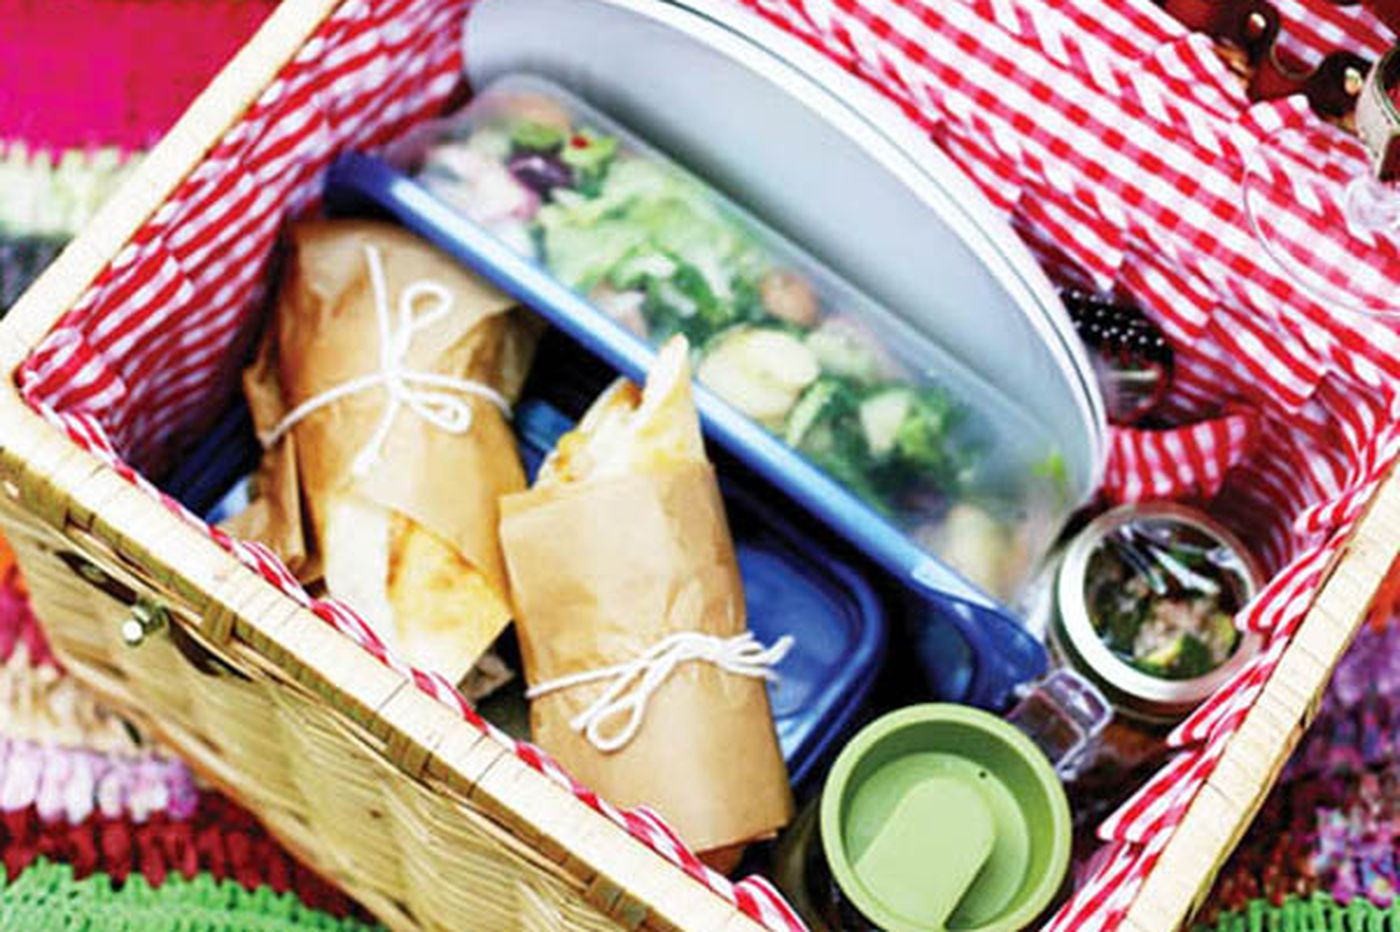 Eat more plants: Recipes and tips for a plant-based picnic